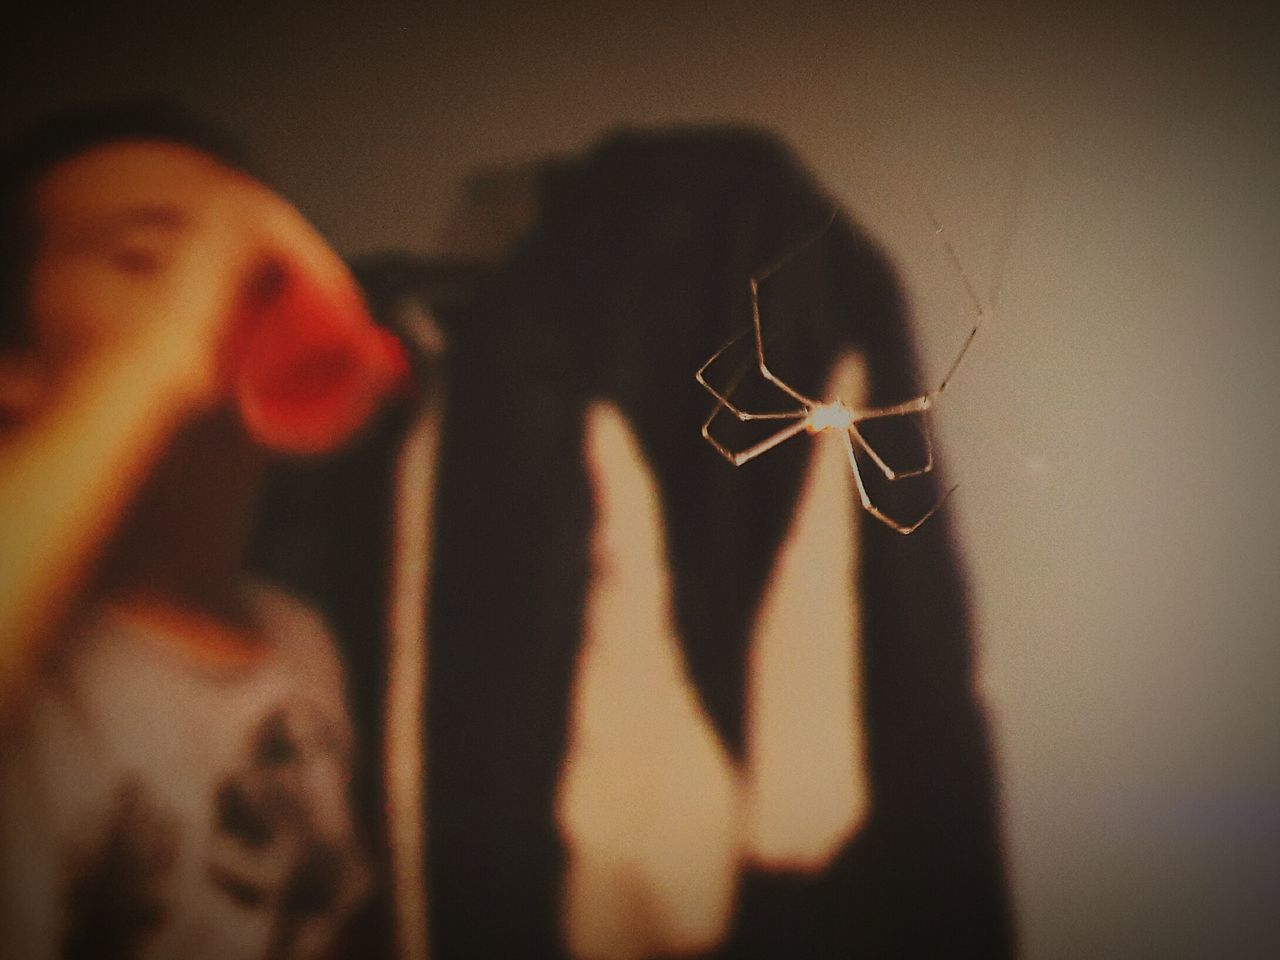 And you still wonder how to become spider-man ? Real People People One Person Spider Spiderman Spiderworld Spiders Spiders In My Room Spiders Are Cool Adult Adults Only Only Men Day Outdoors Participant